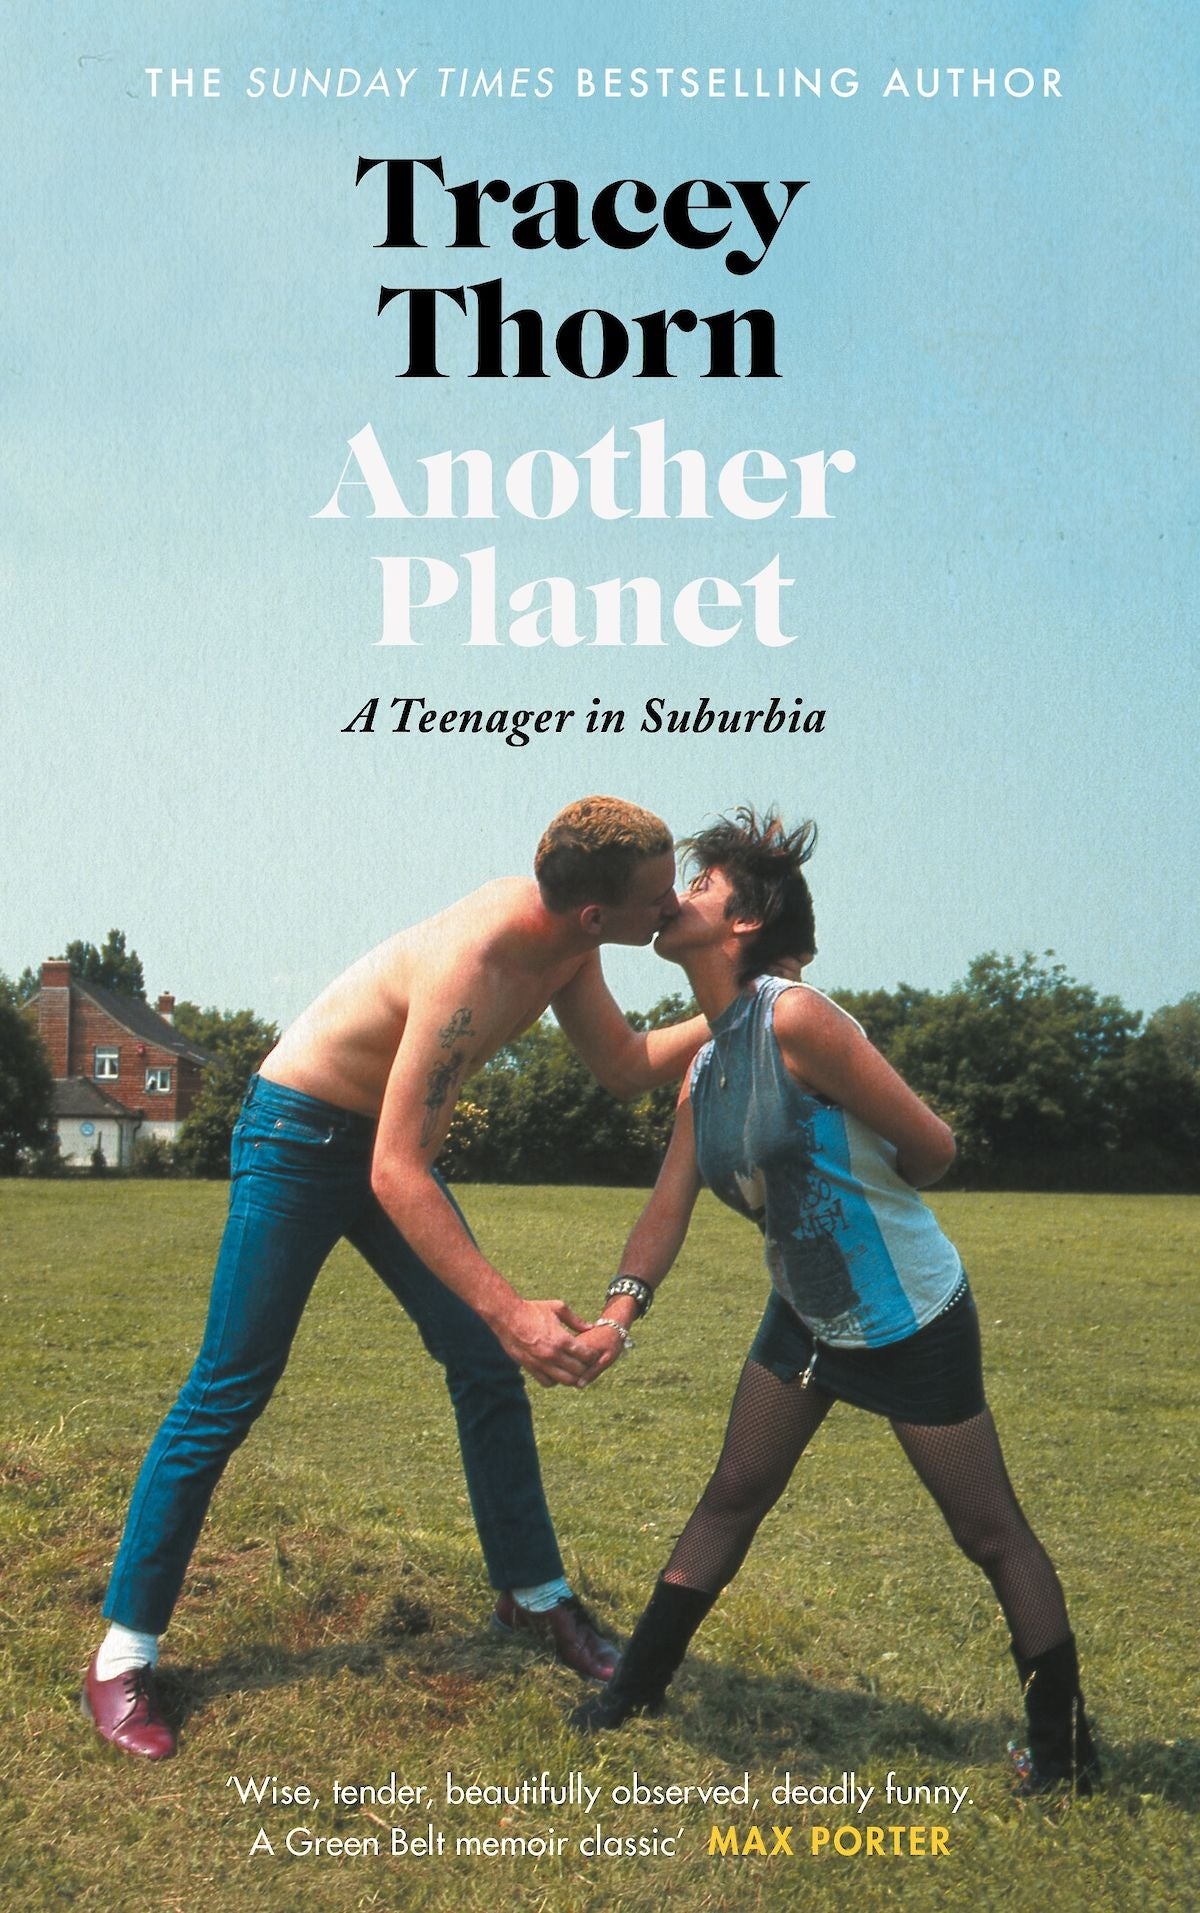 Tracey Thorn - Another Planet: A Teenager in Suburbia (Hardback, *Signed*)